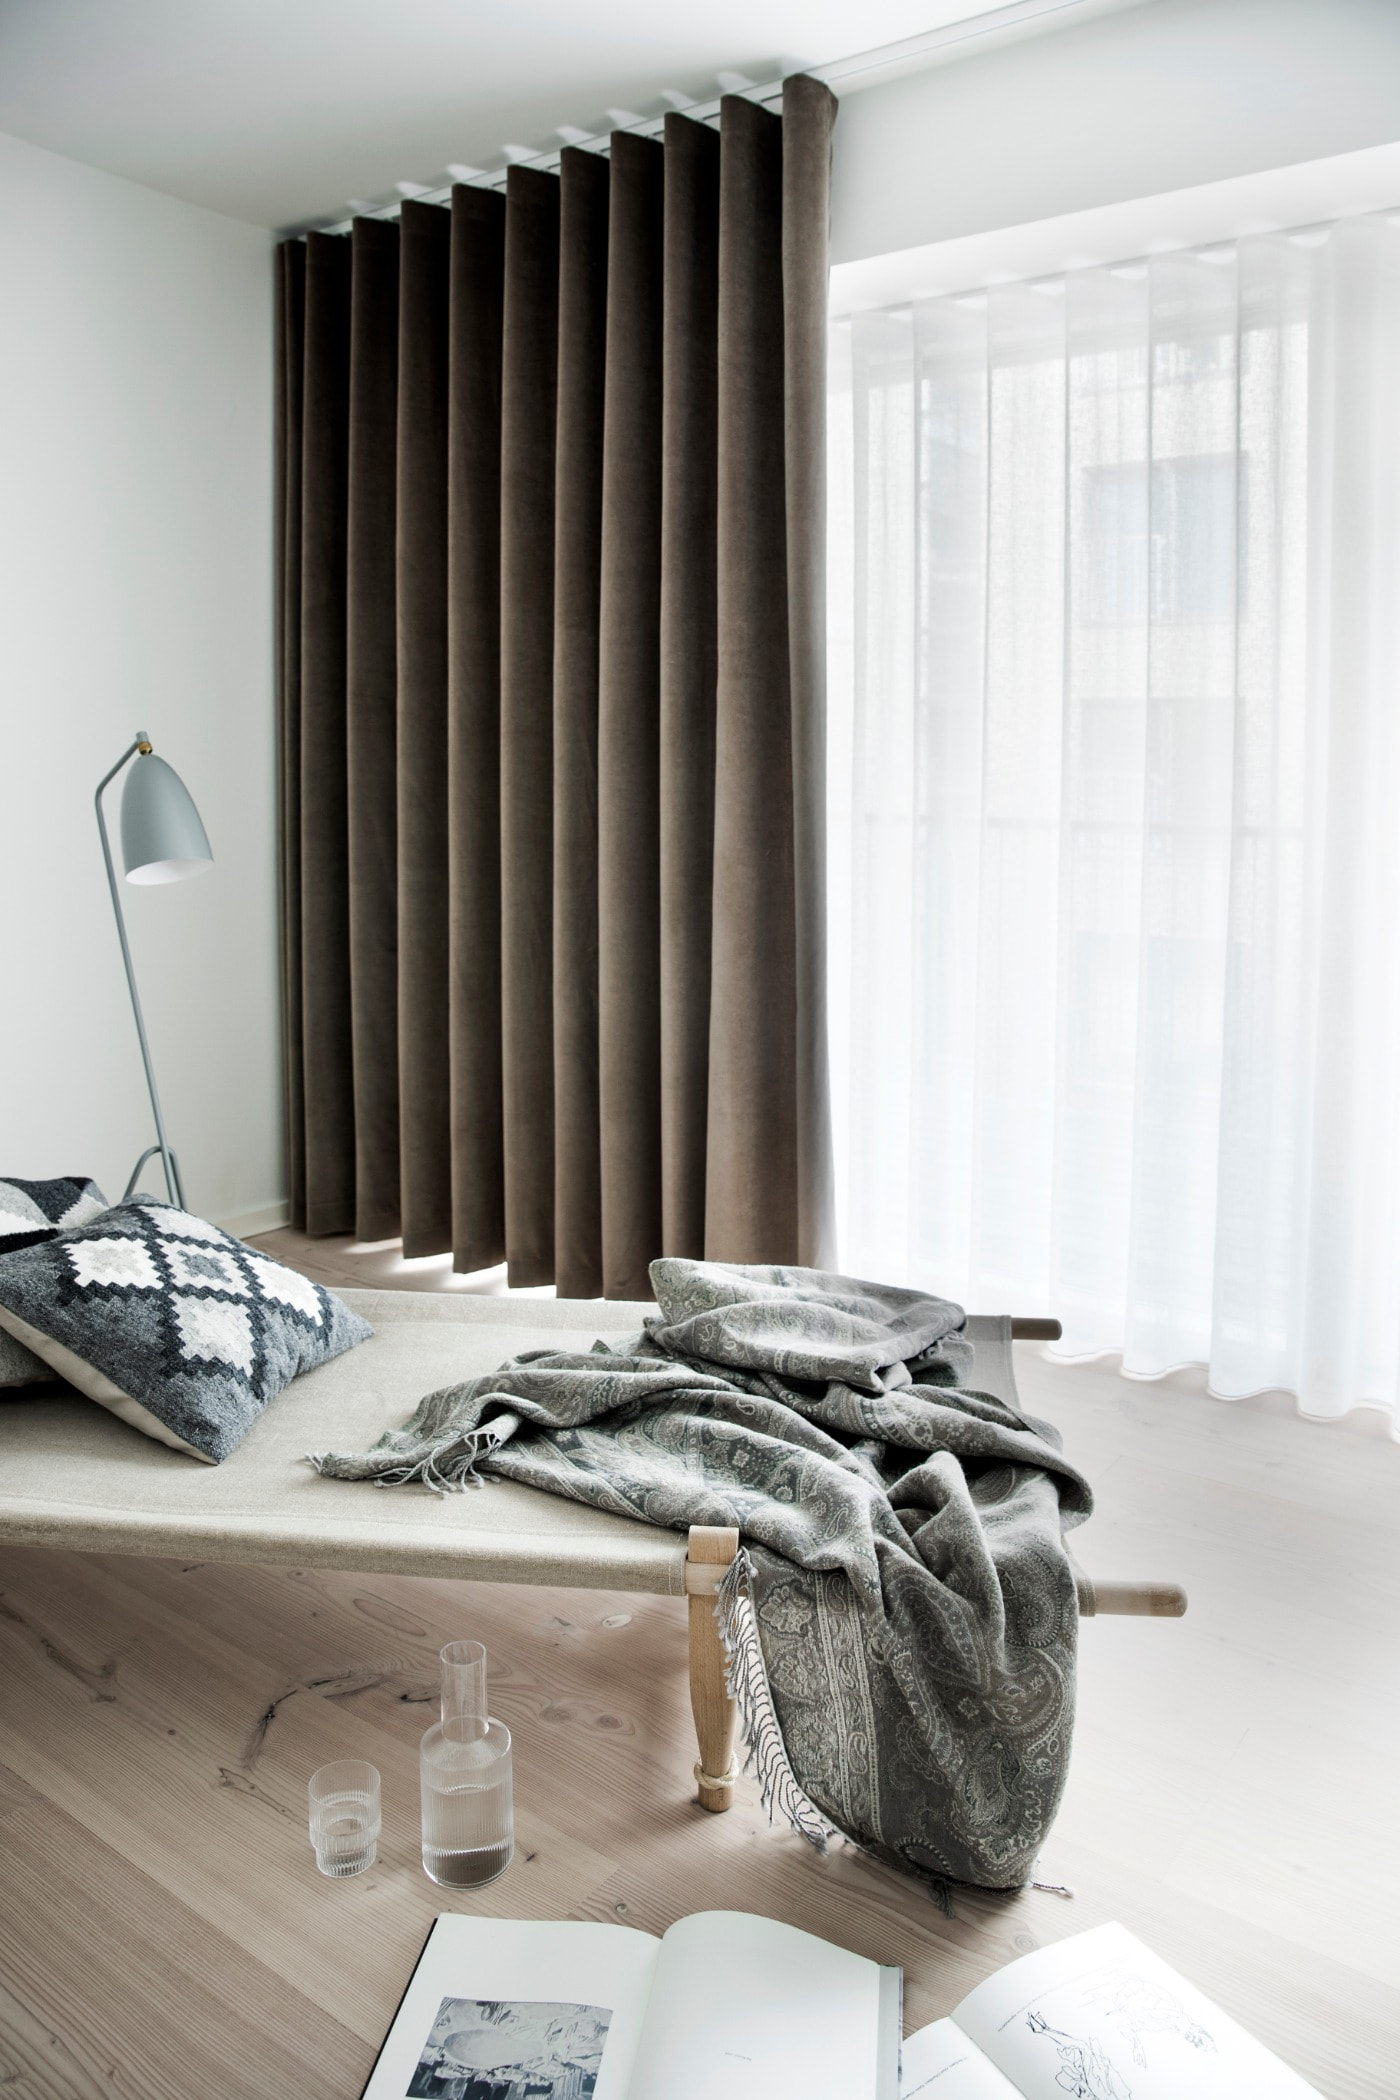 Window covering, Bed sheet, Interior design, Property, Furniture, Curtain, Room, Bedroom